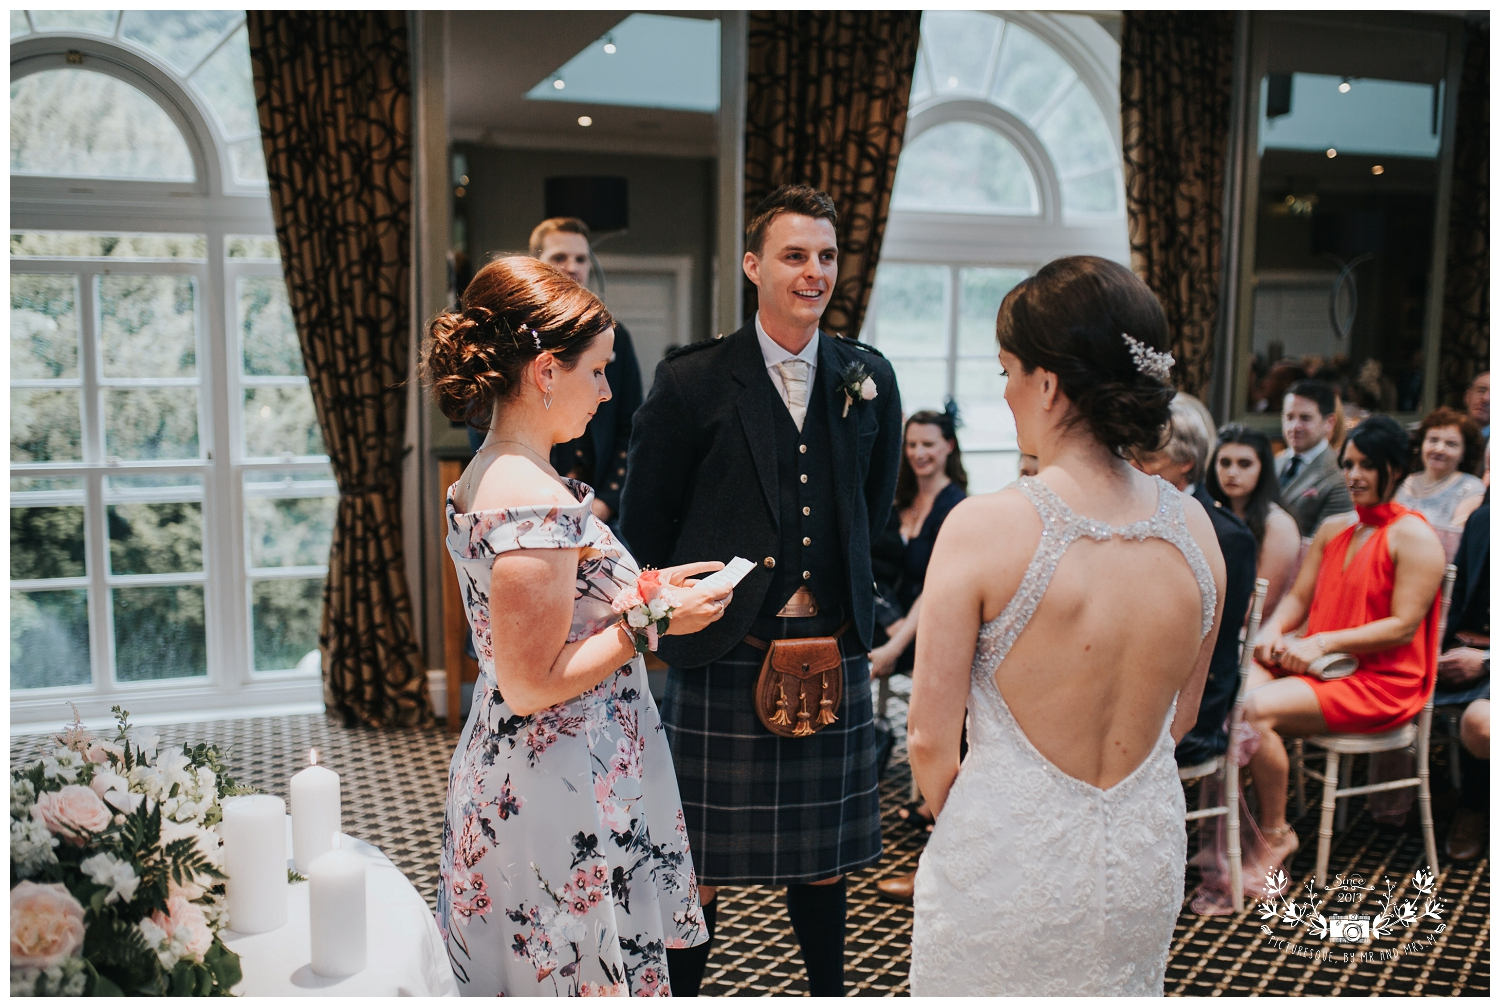 Balbirnie House Wedding, Picturesque by Mr and Mrs M_0028.jpg